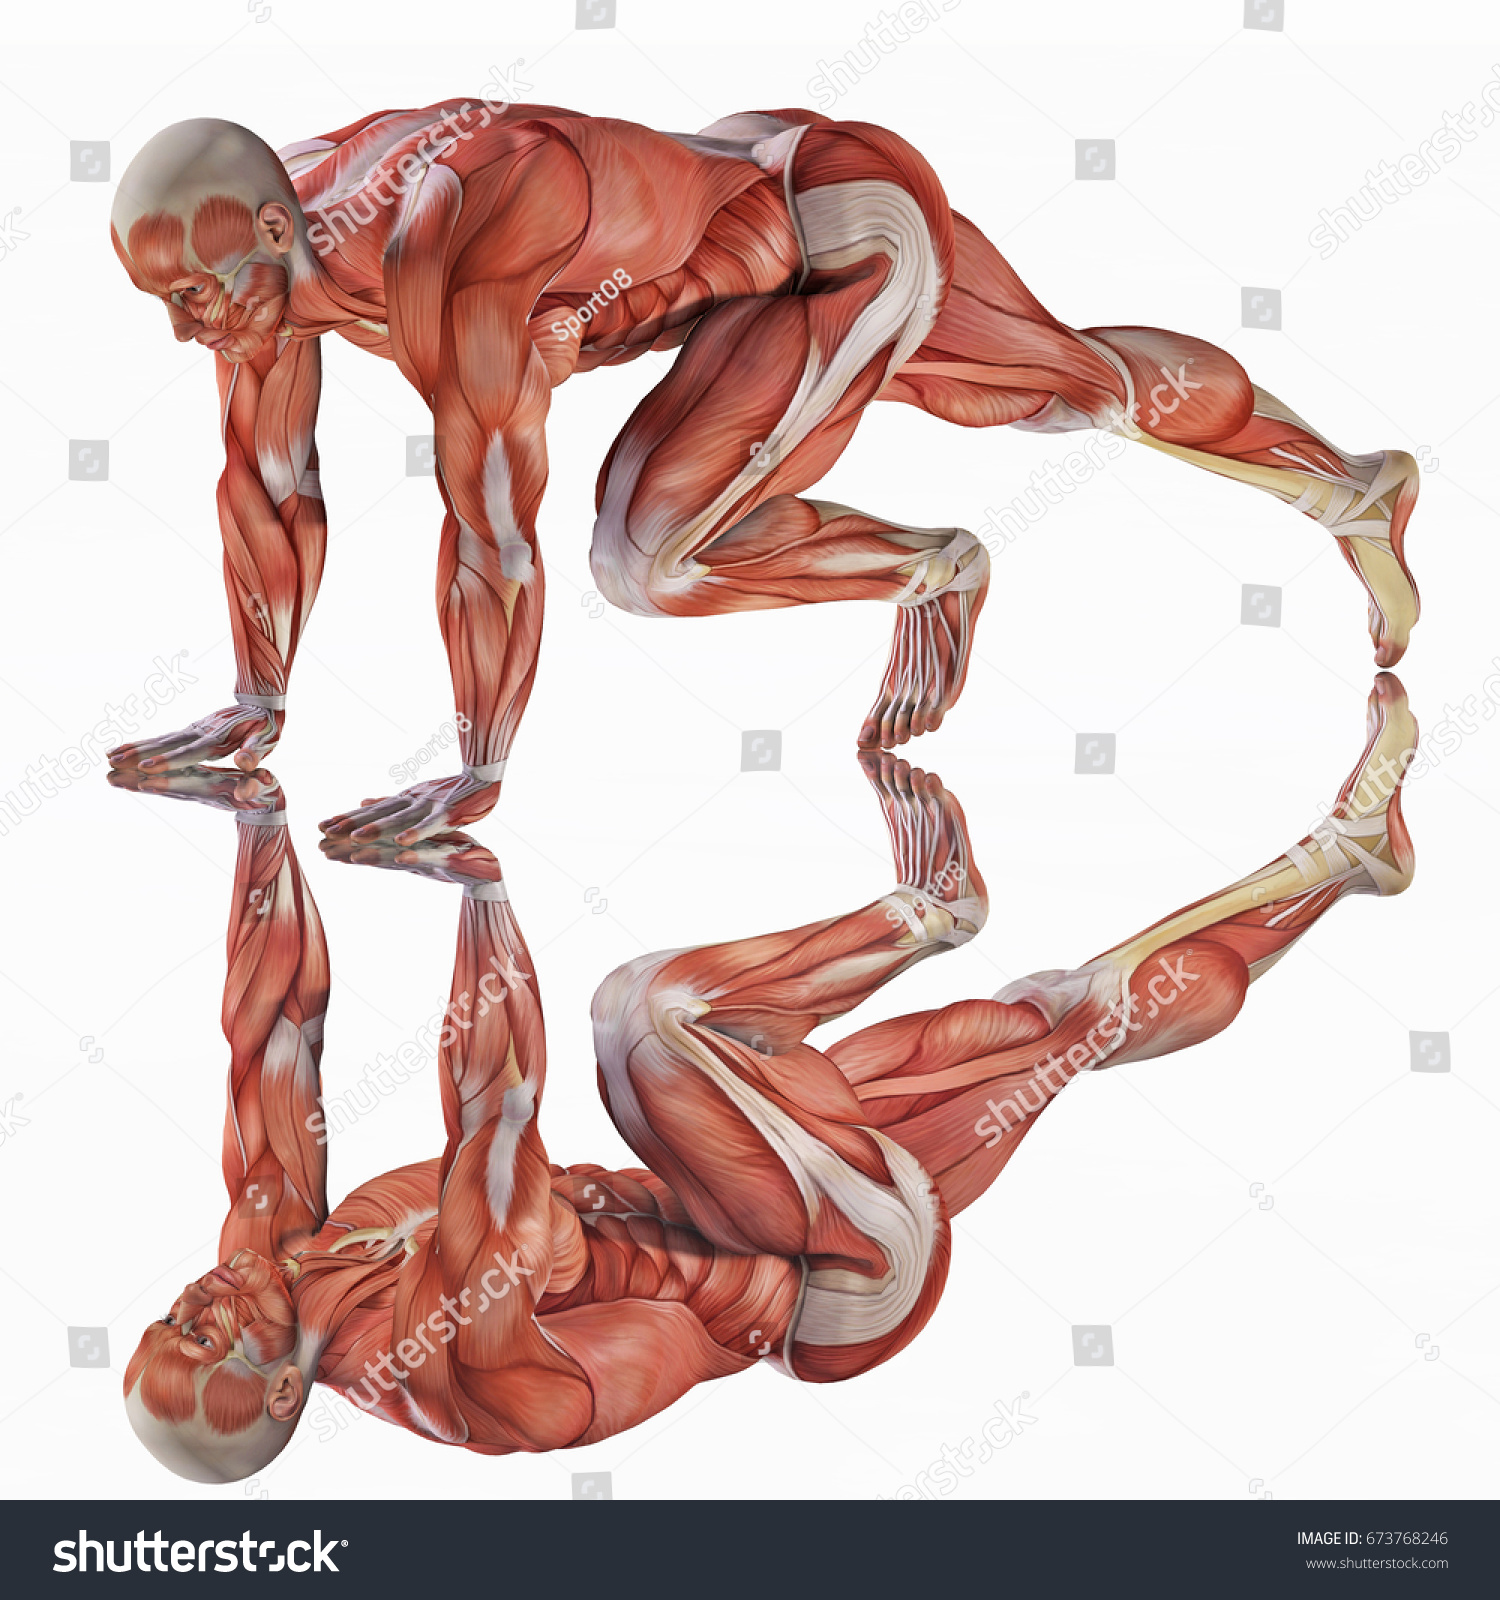 3 D Rendering Strong Anatomical Muscles Man Stock Illustration ...